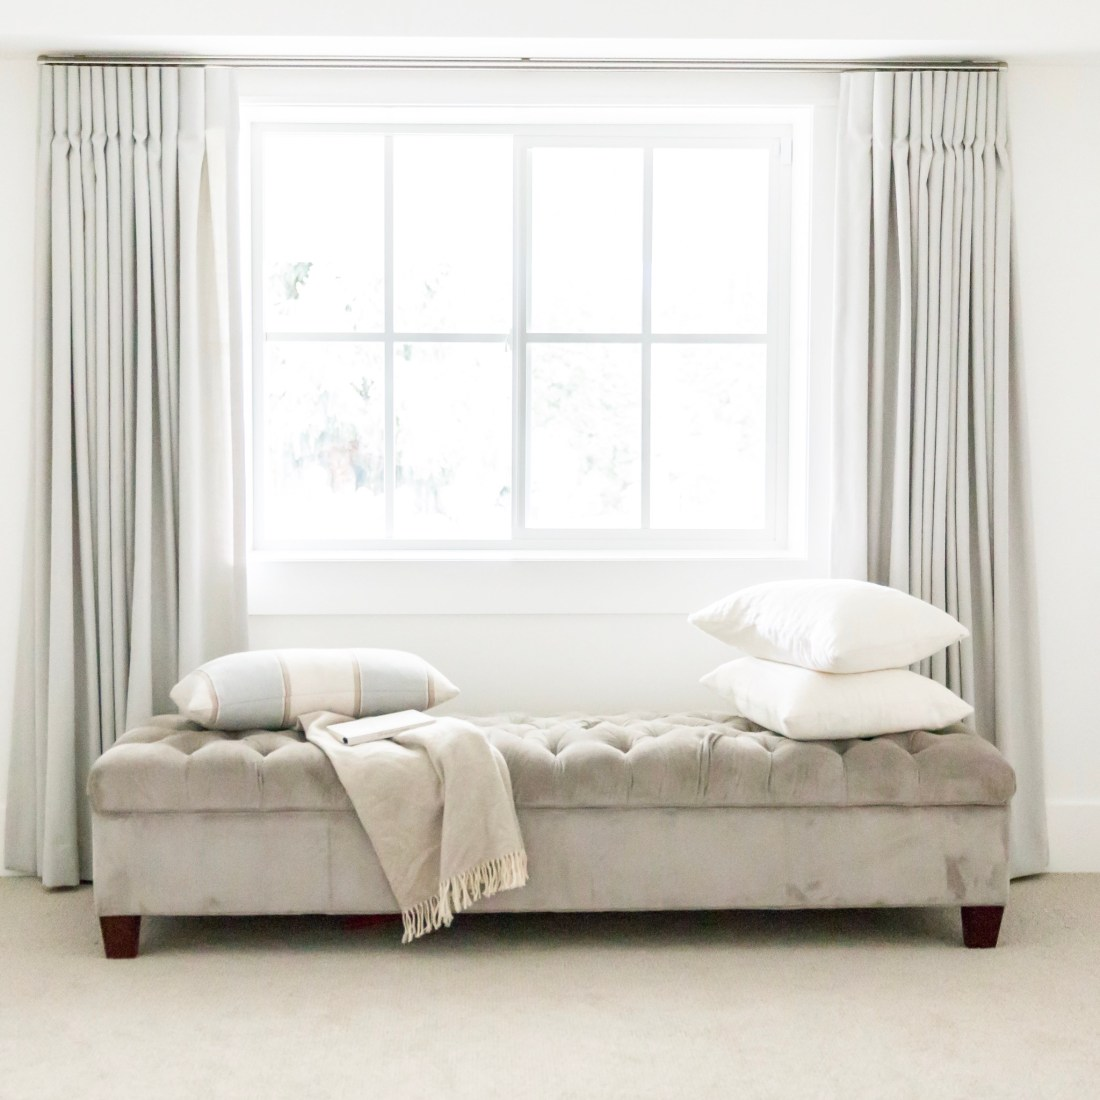 Reading nook with Fog drapes from Q Design Centre